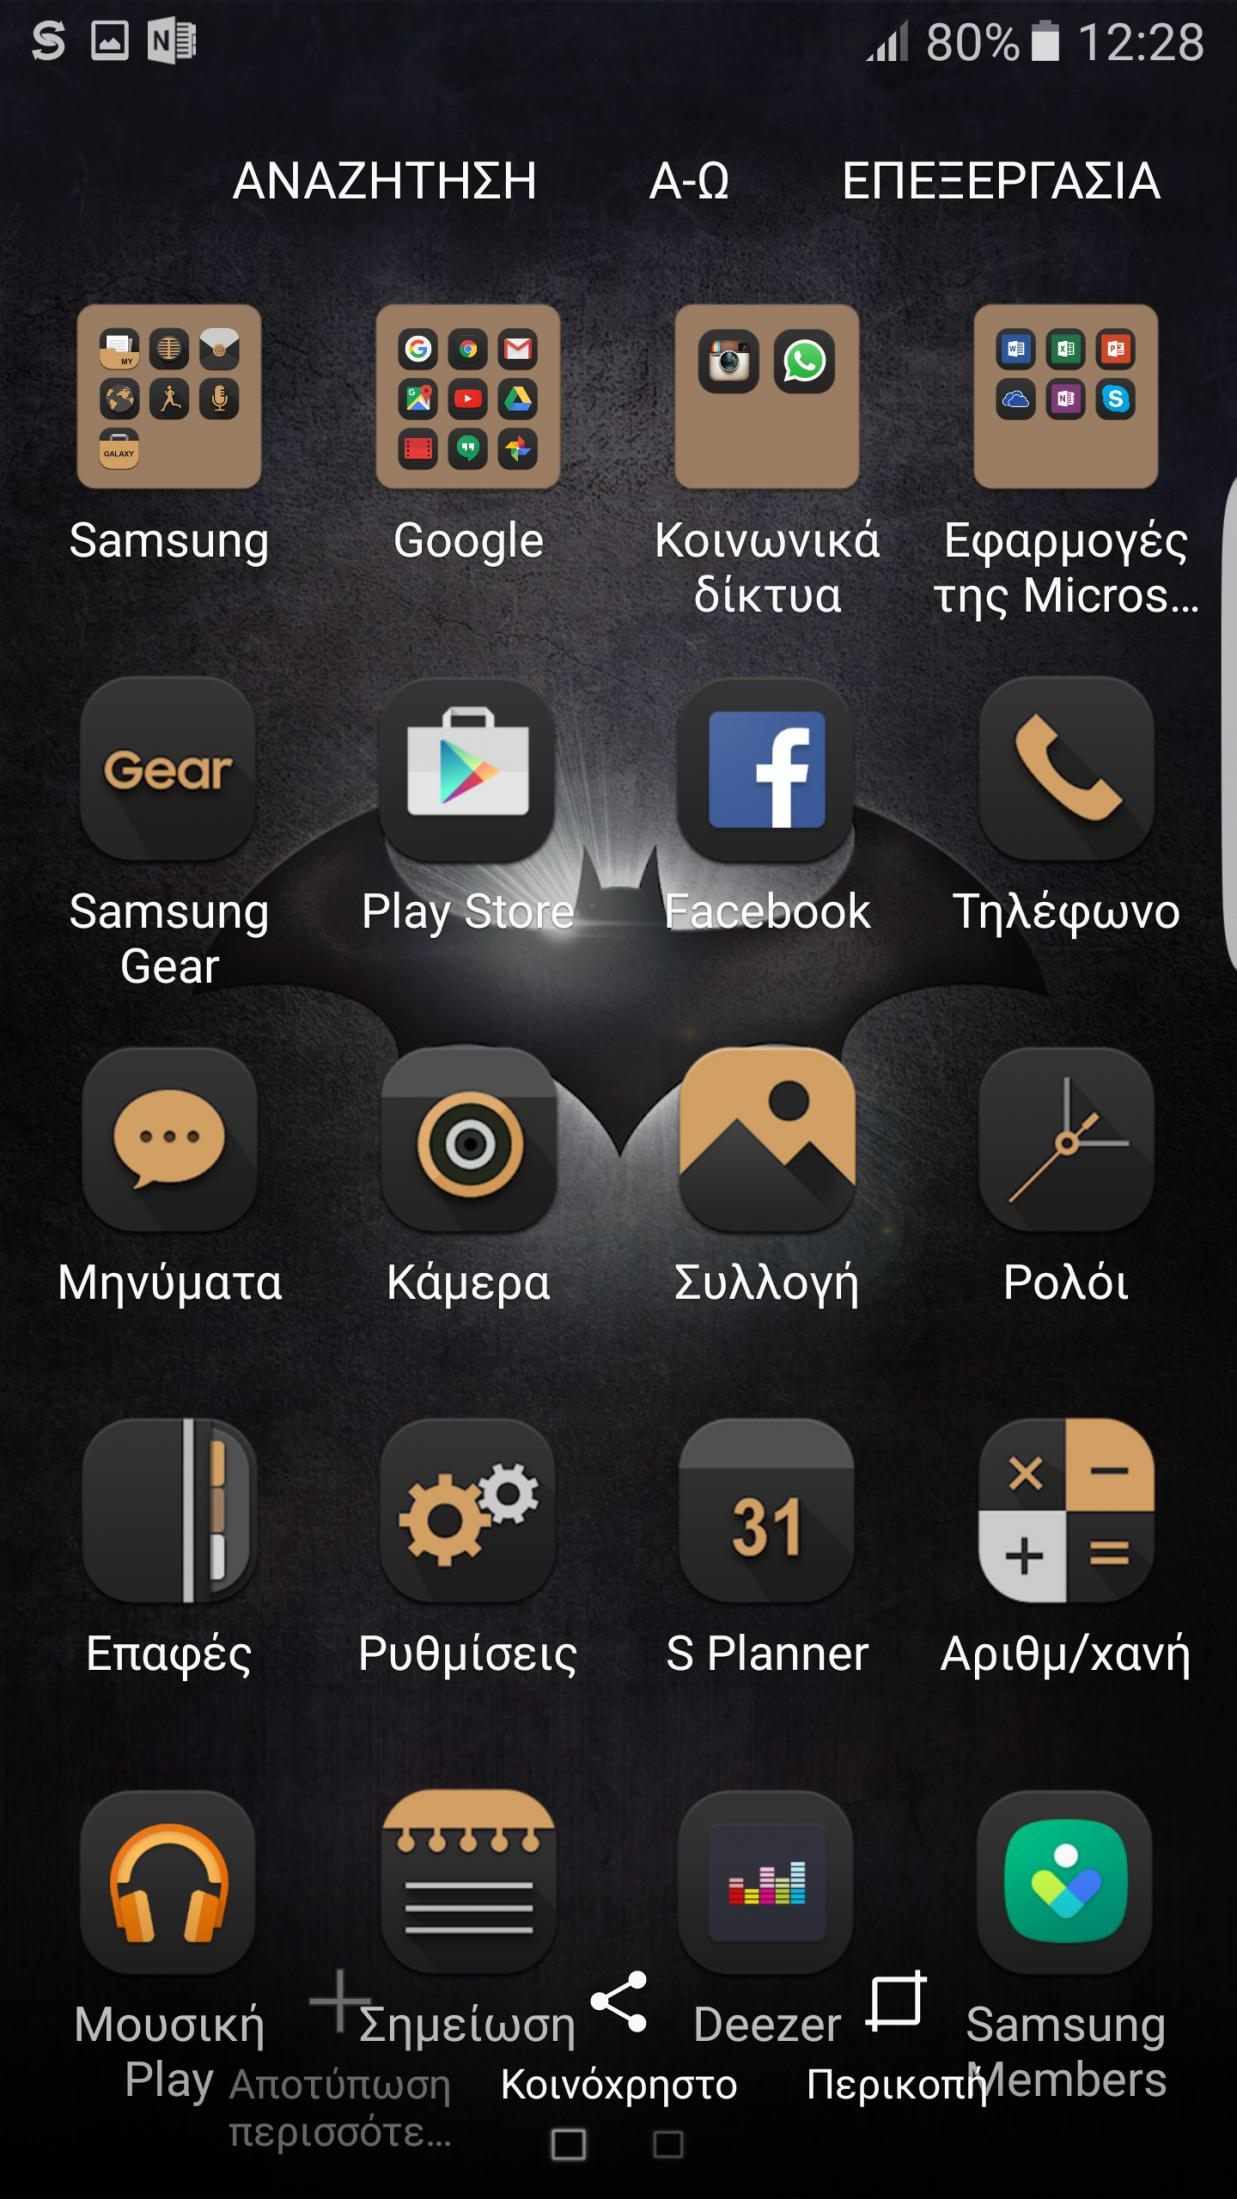 Galaxy S7 Edge Injustice theme Apk